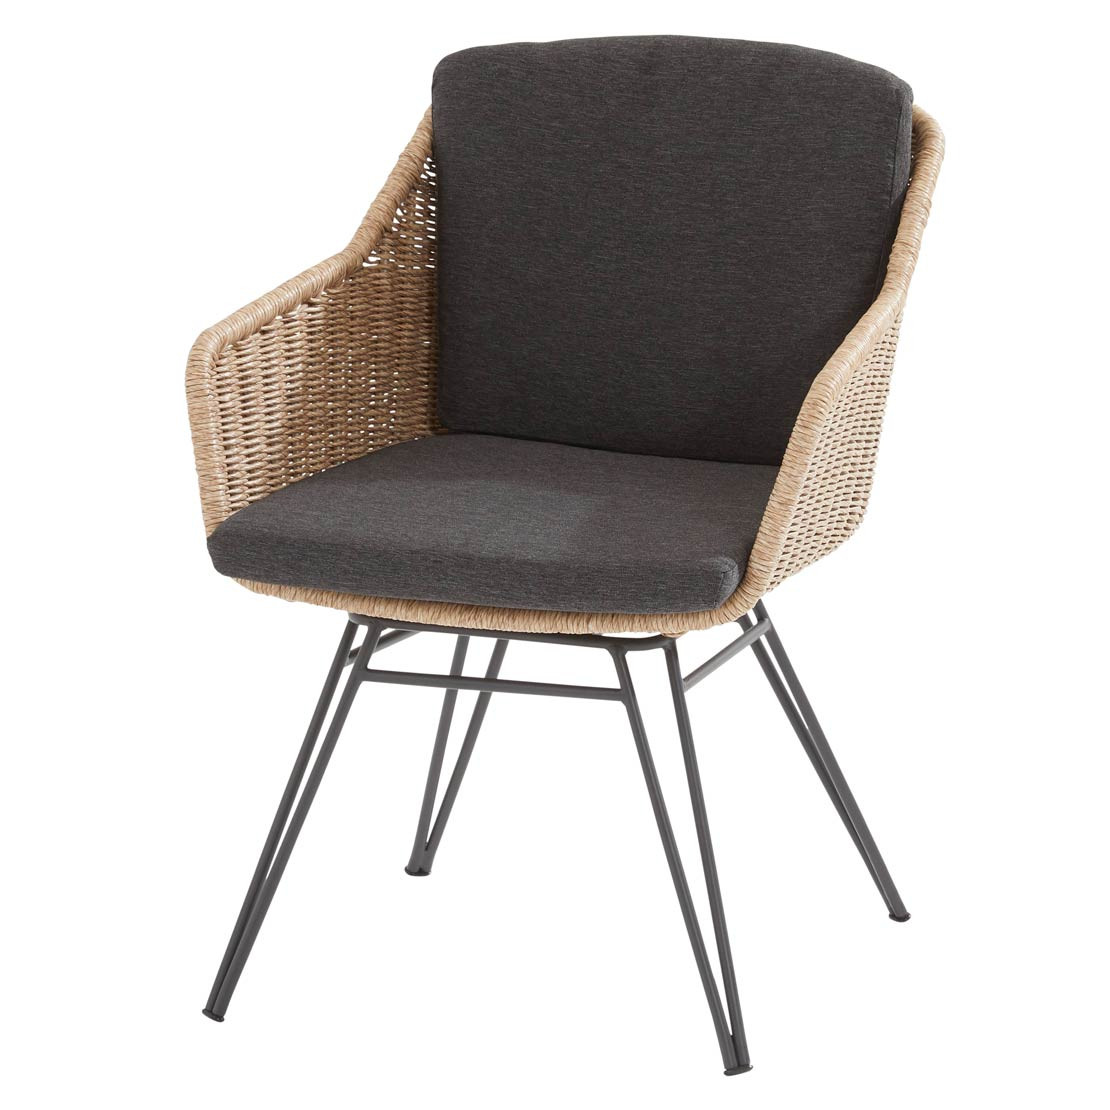 Bohemian dining chair Natural with 2 cushions